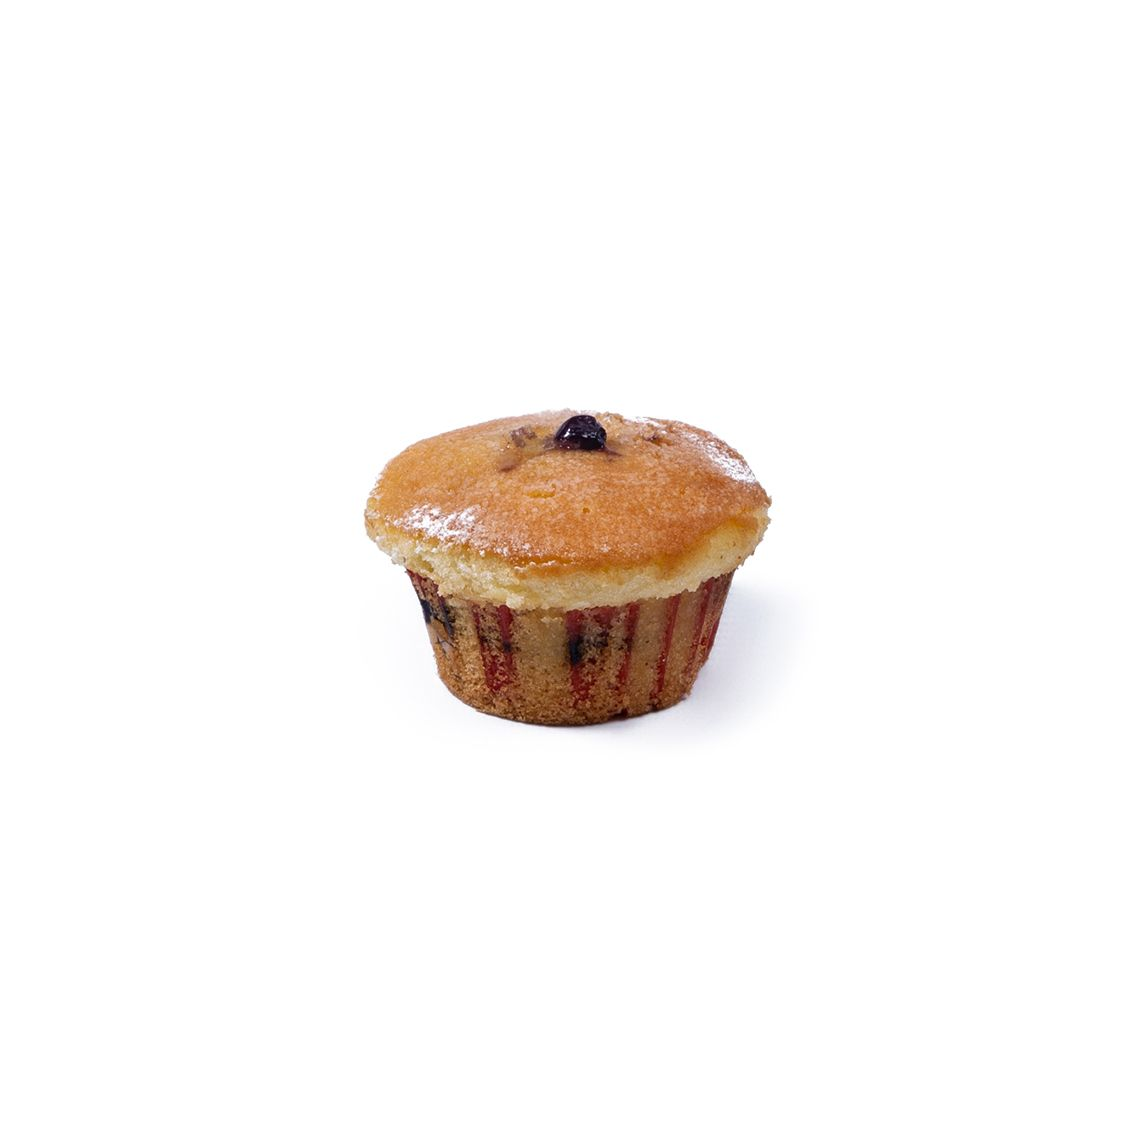 Kitchen Cuisine Default Category Blueberry Muffin